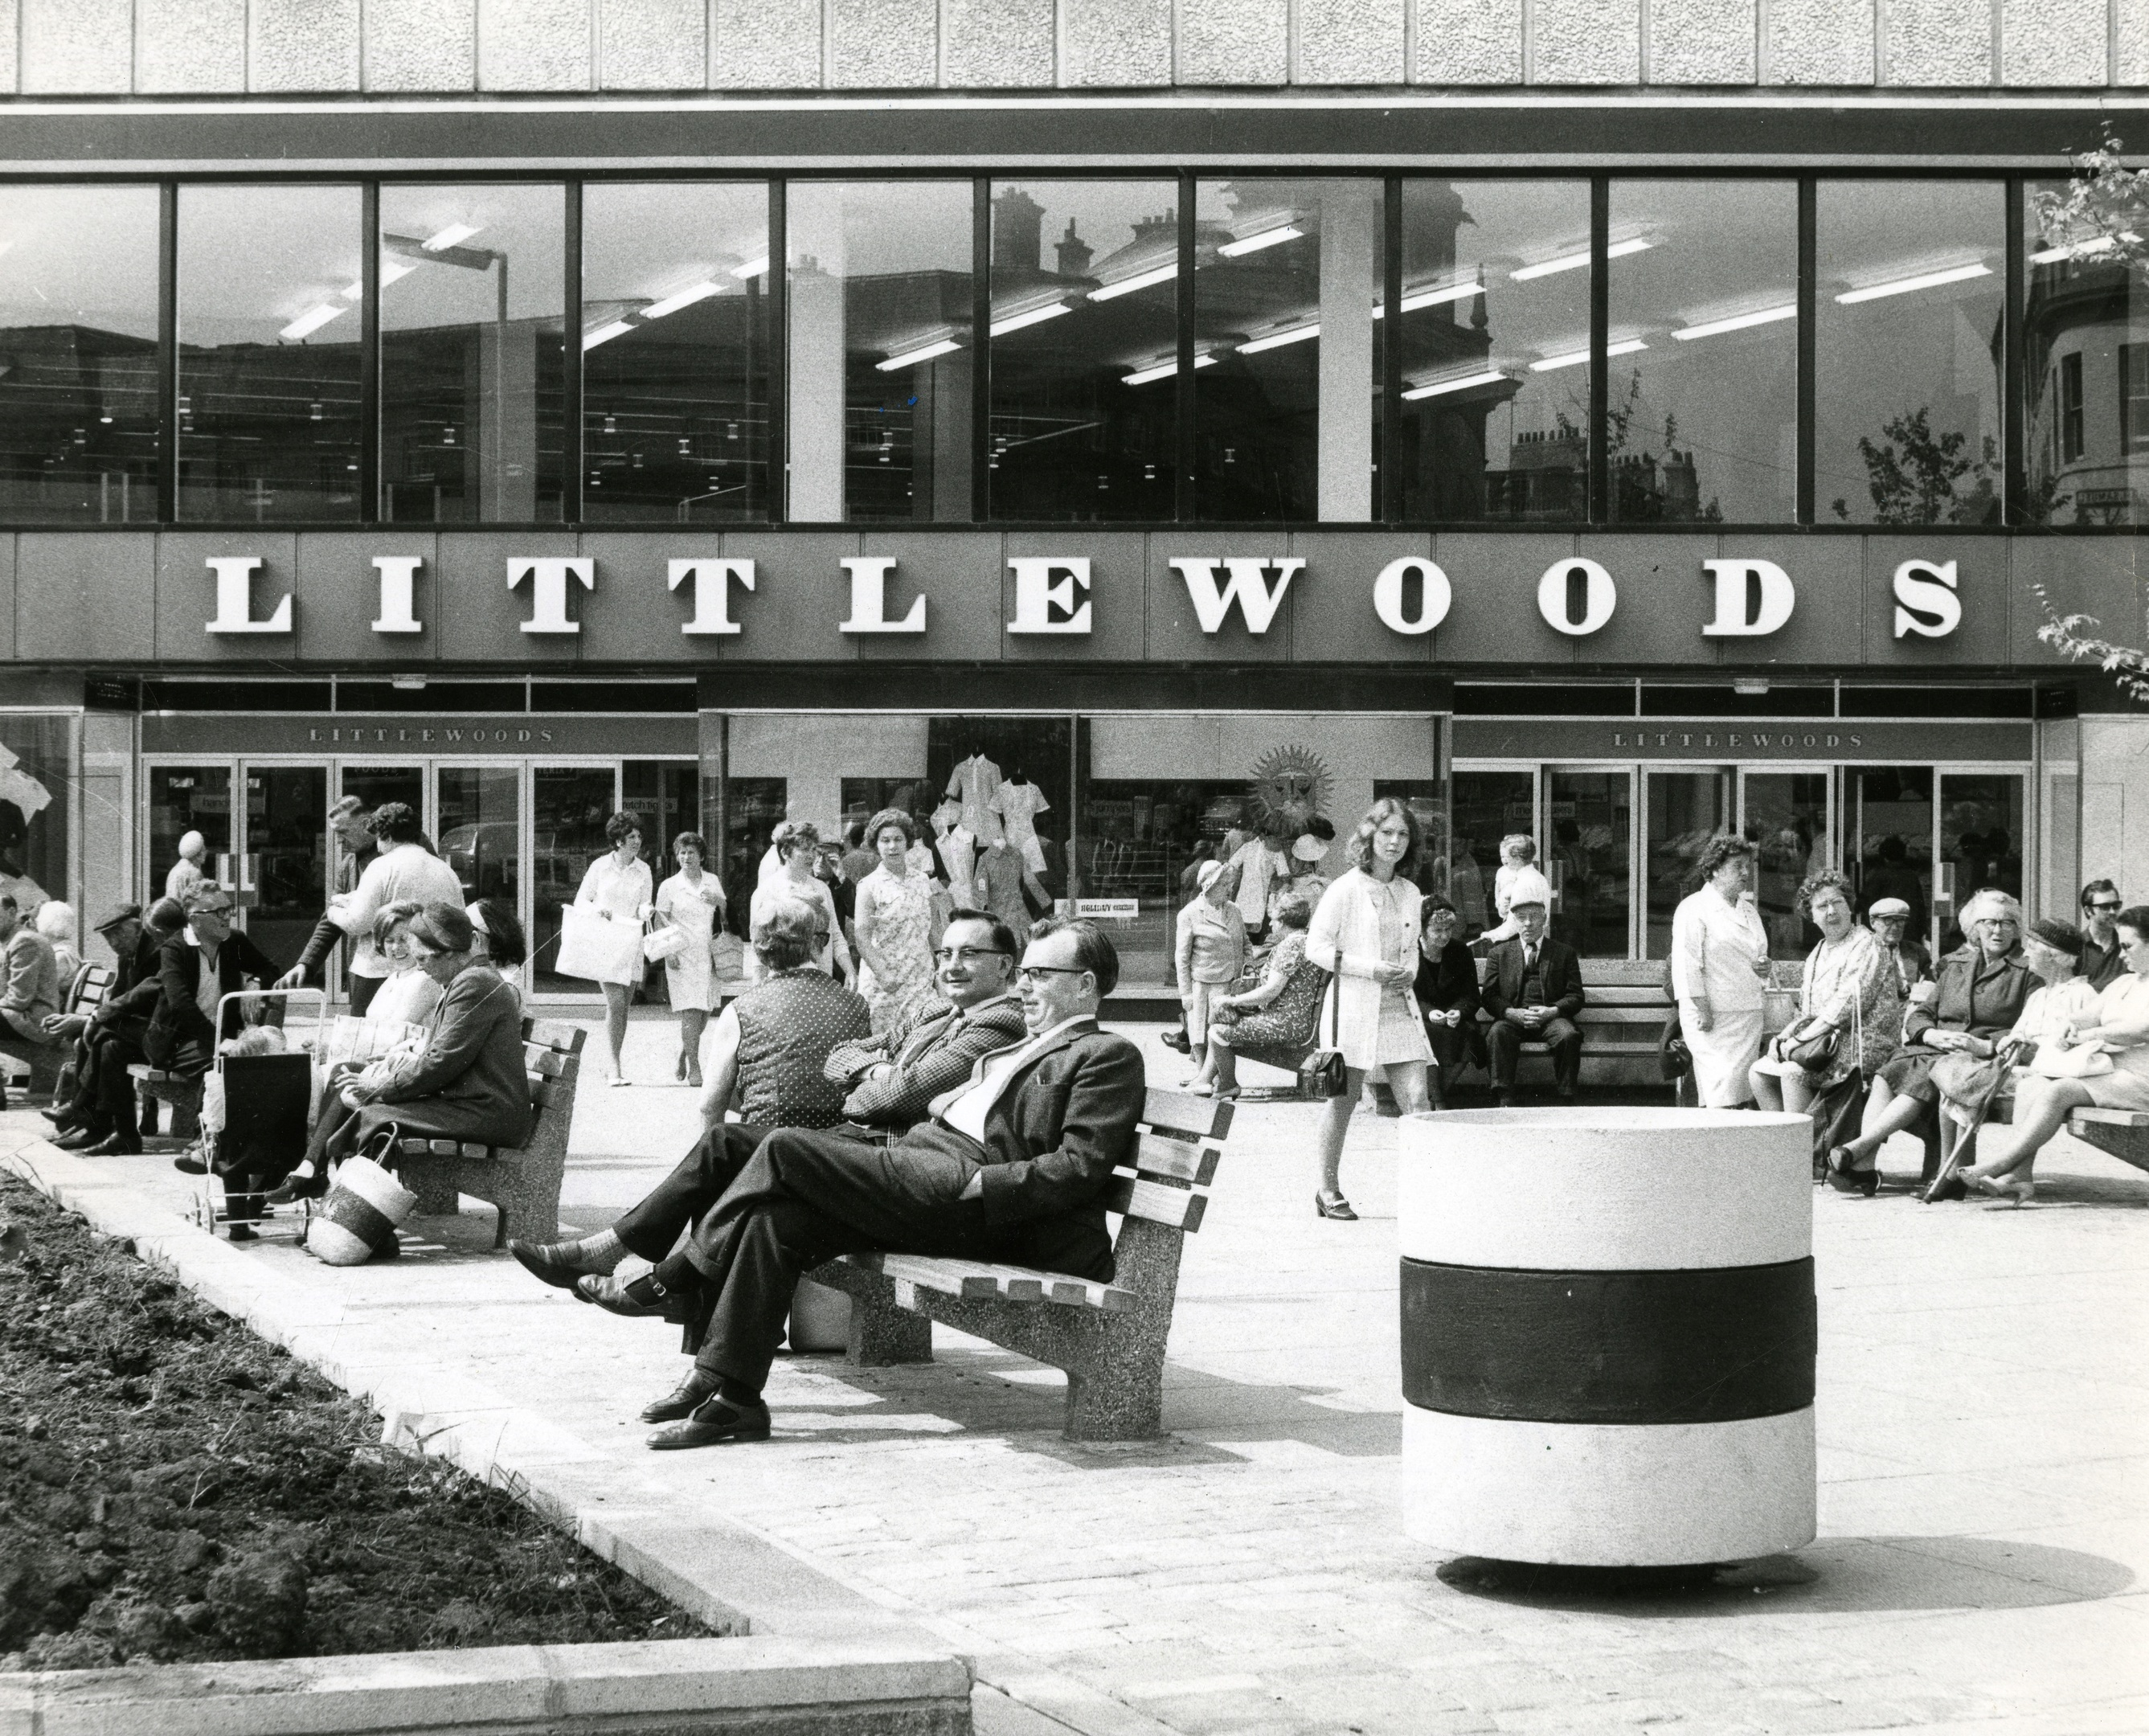 Folk sit outside the old Littlewoods store (now Primark) in 1970